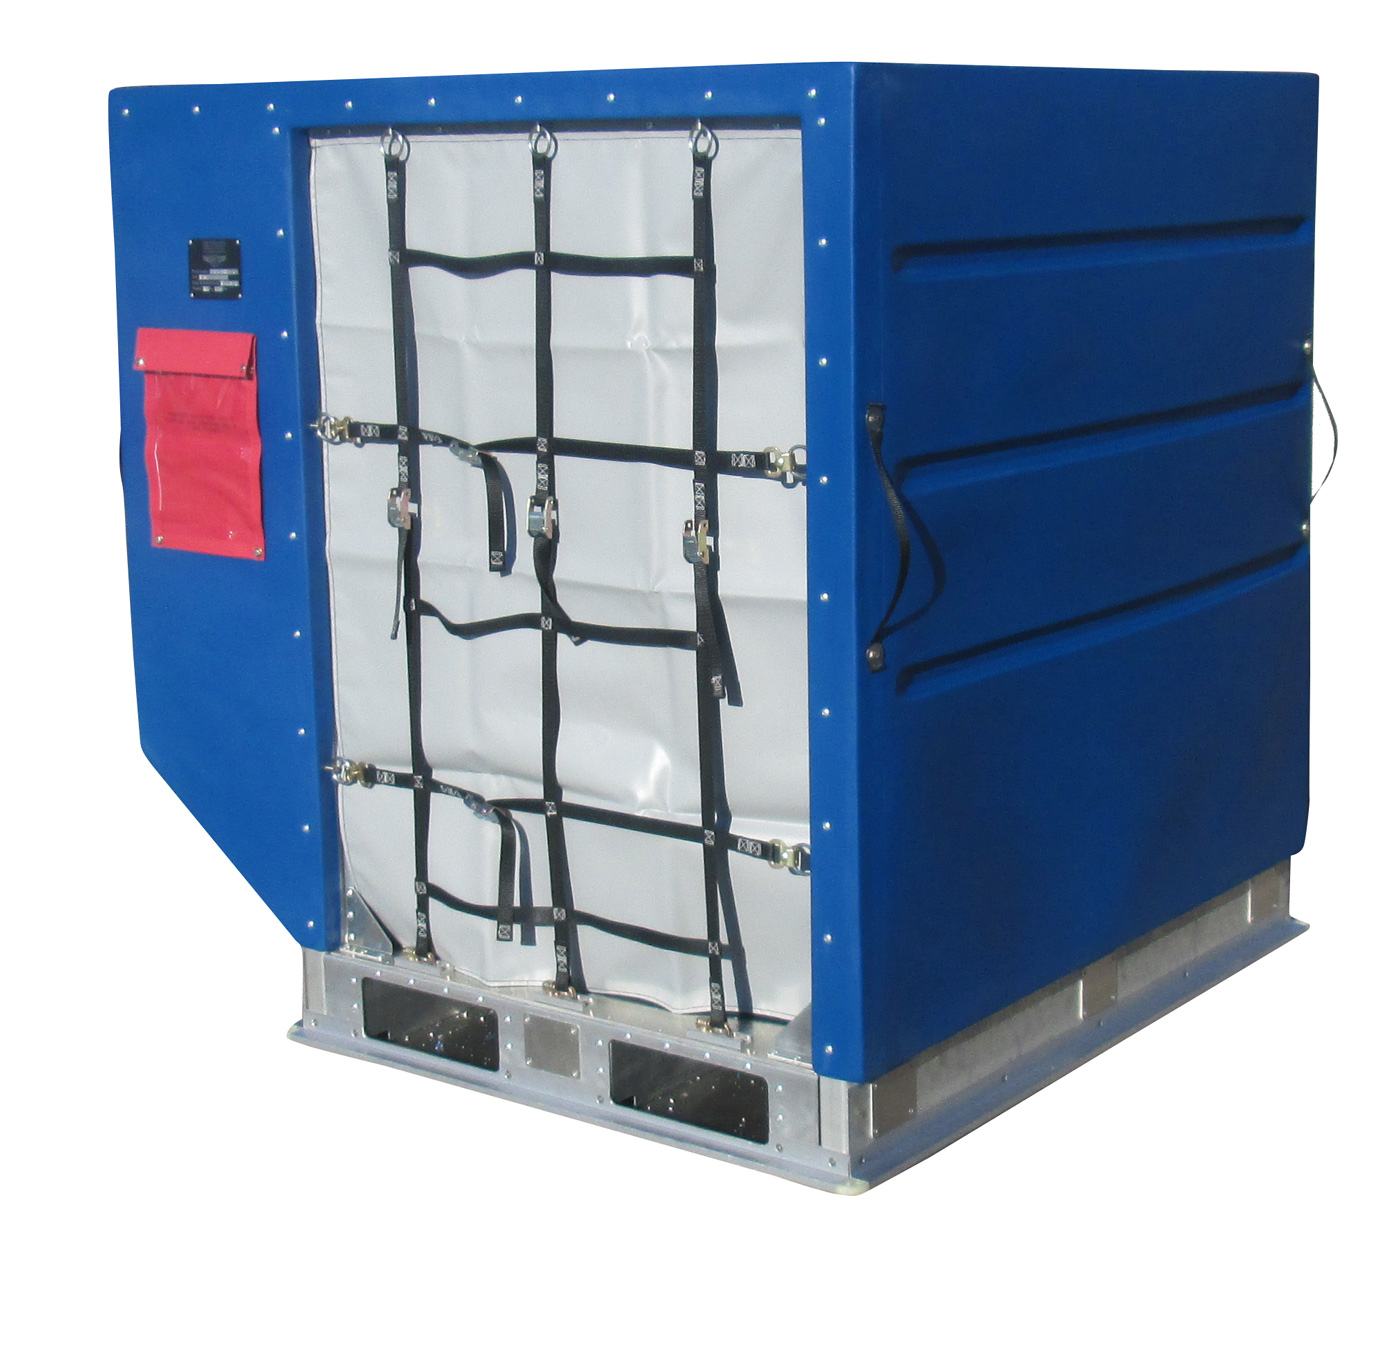 LD 2 DPN Base, LD 2 Air Cargo Container, LD 2, DPN Container, DPN Air Cargo, Granger Aerospace LD 2 Base